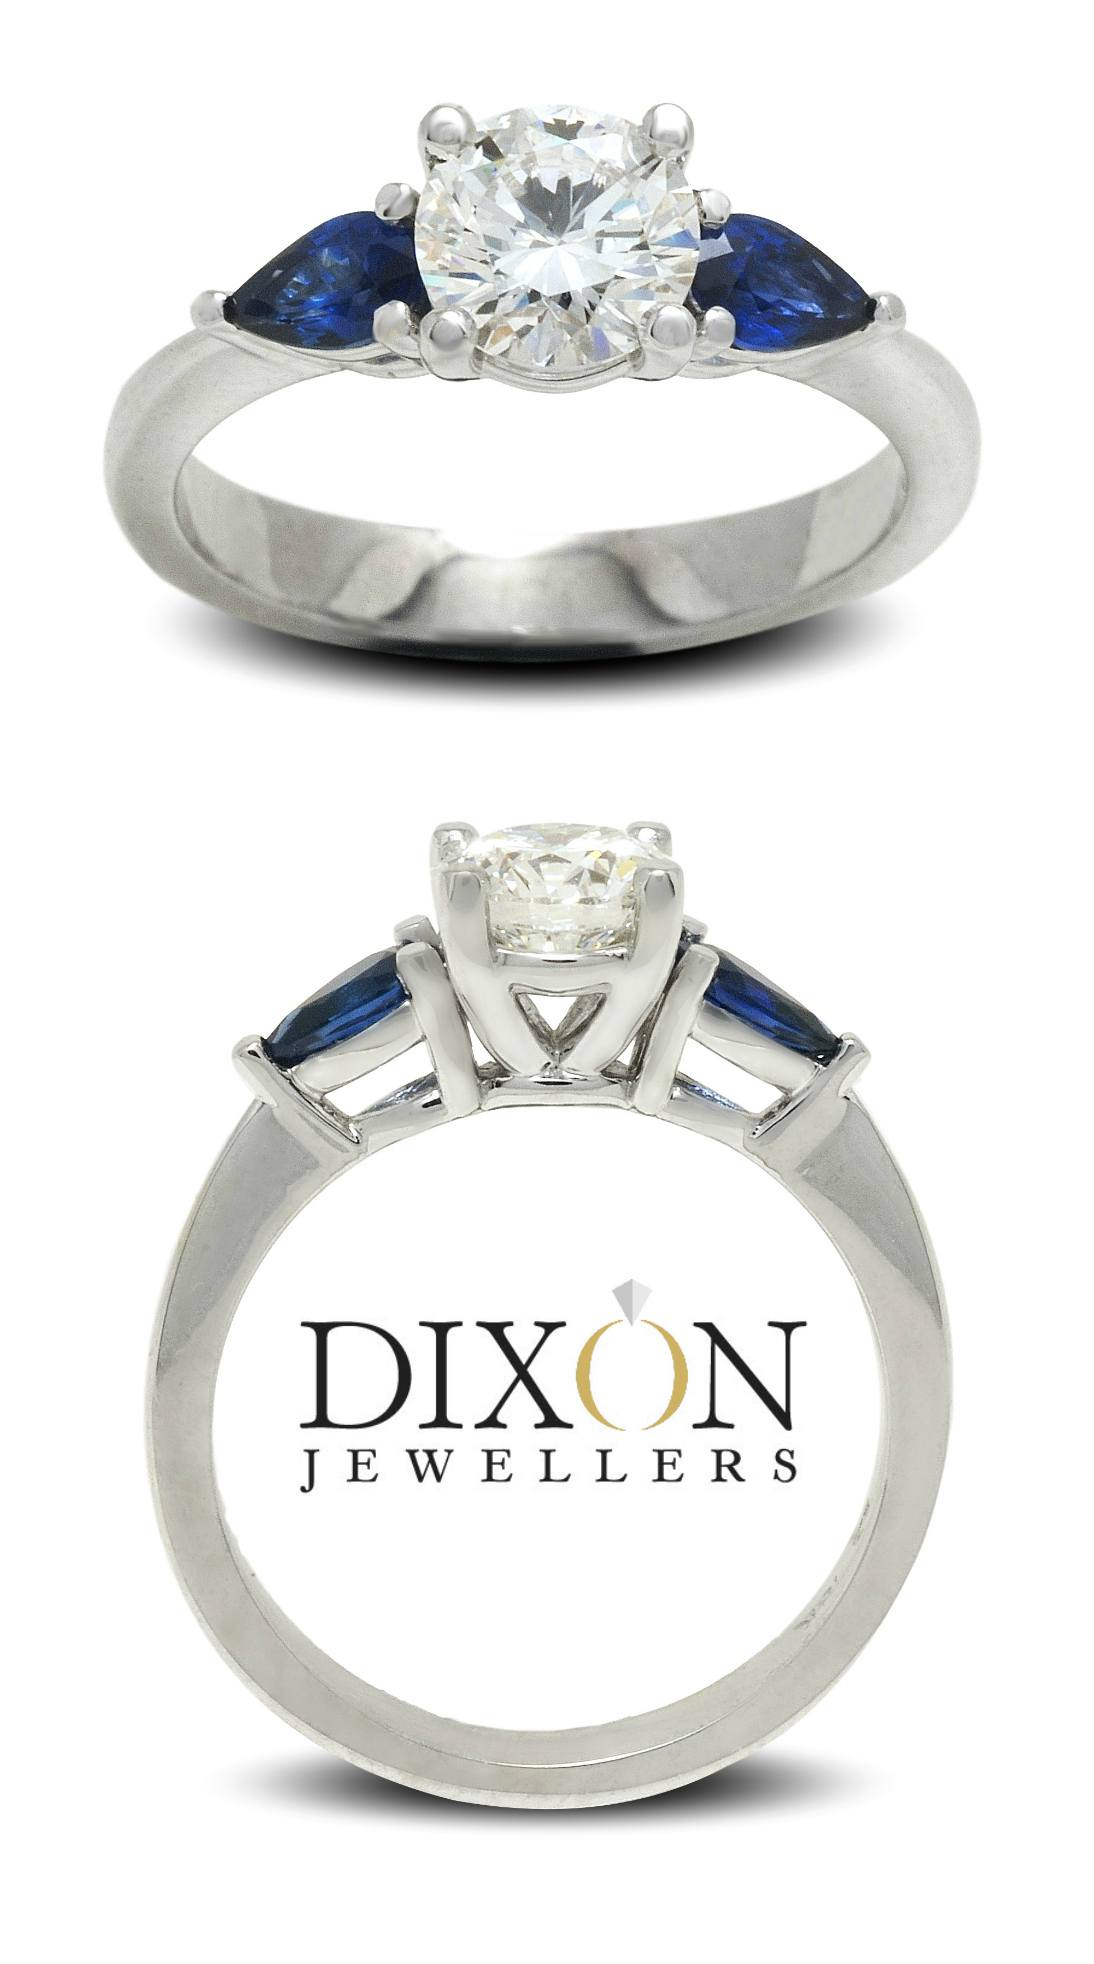 Custom Diamond Engagement Ring with Sapphire Should Stones